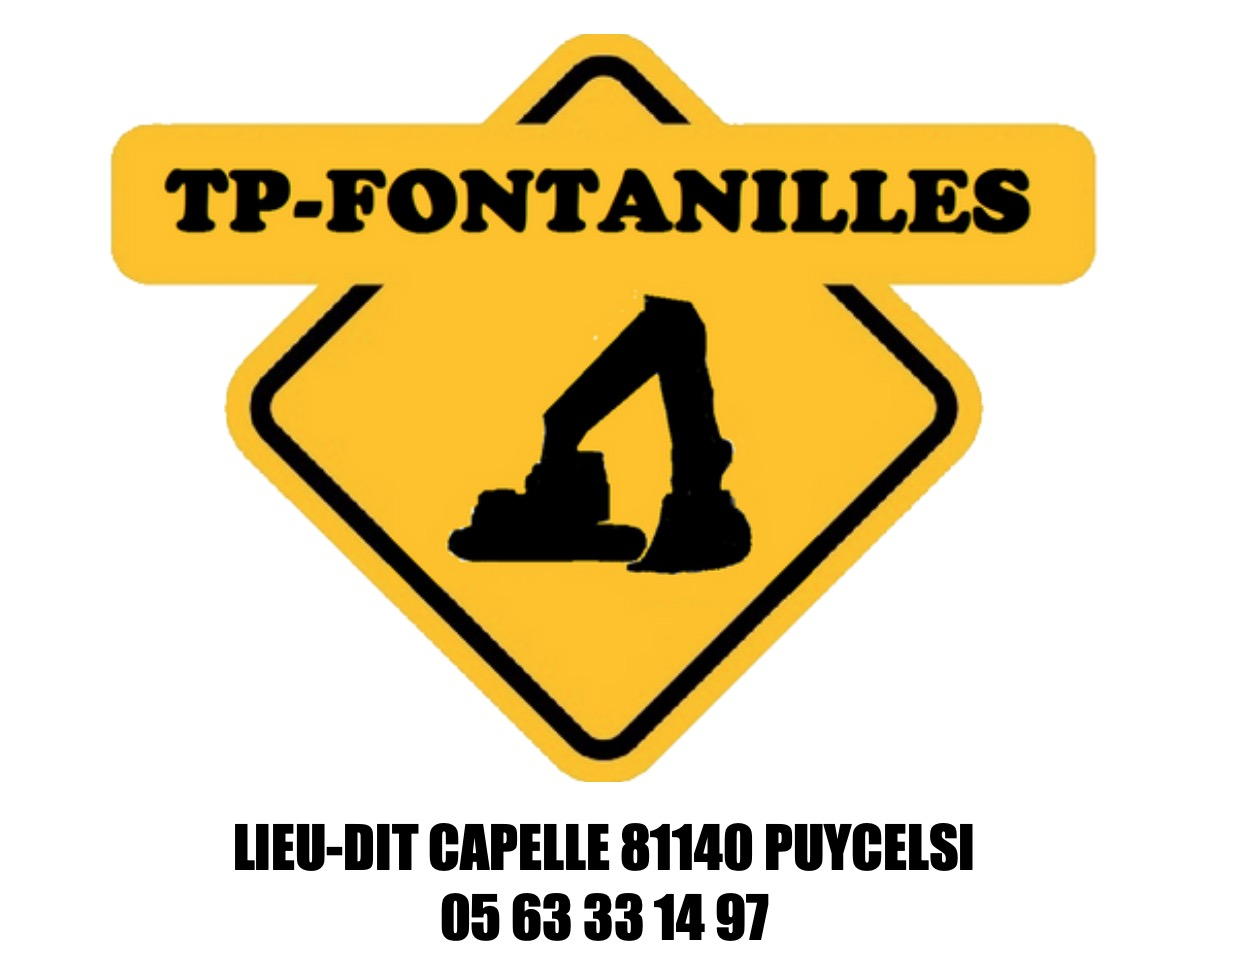 TP Frontanilles